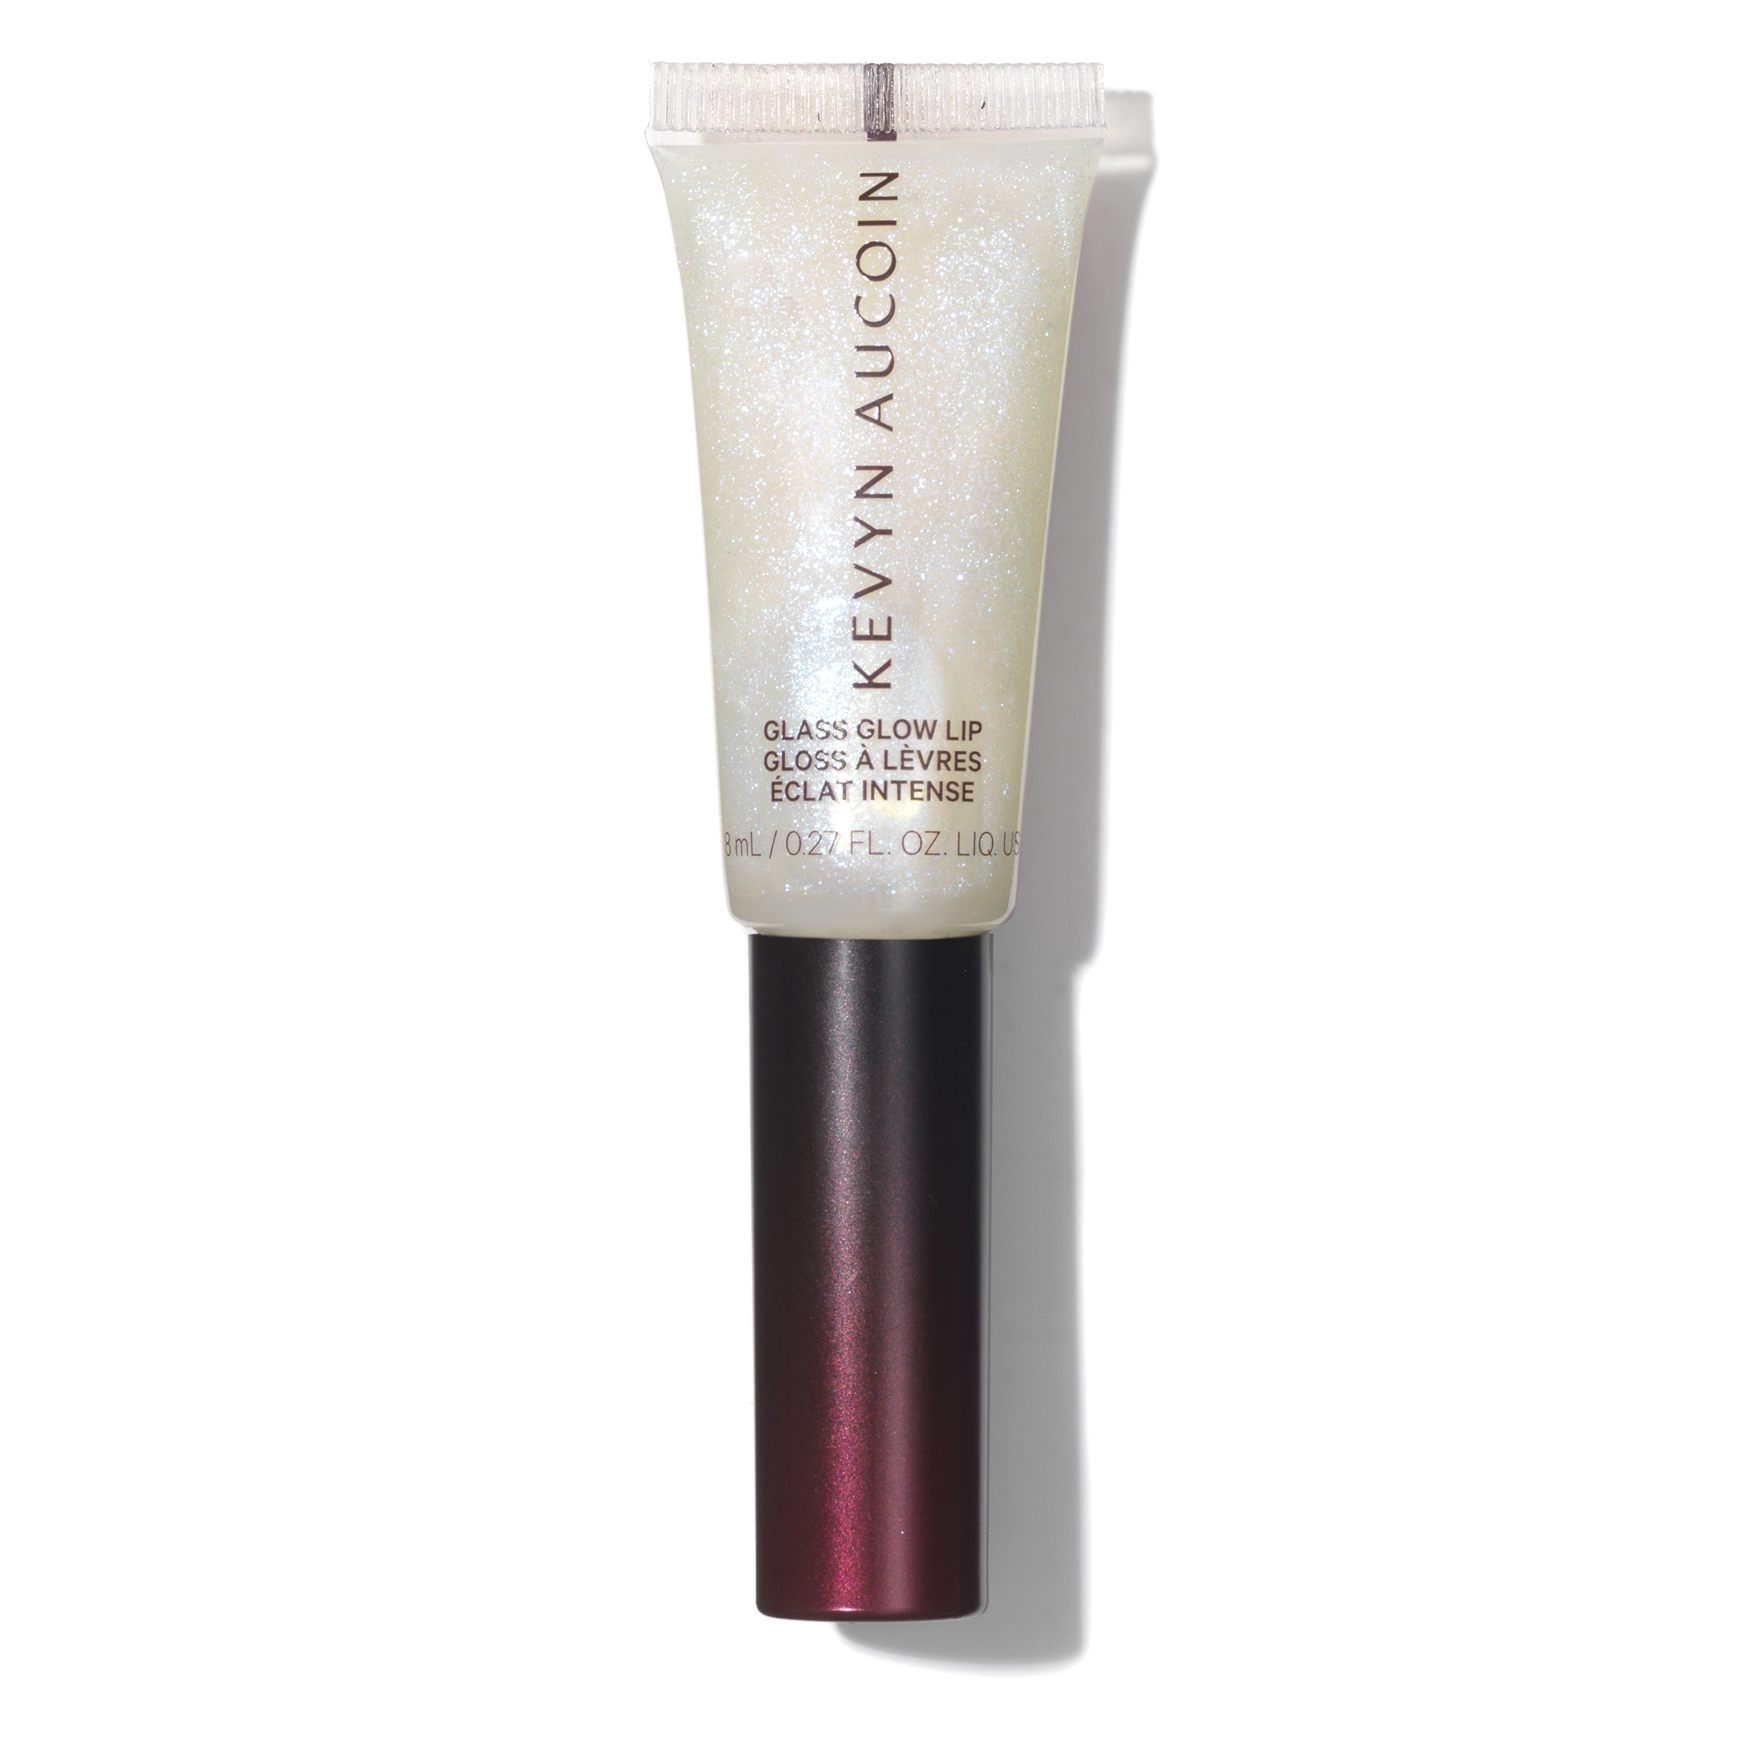 Glass Glow Lip Gloss, CRYSTAL CLEAR, large